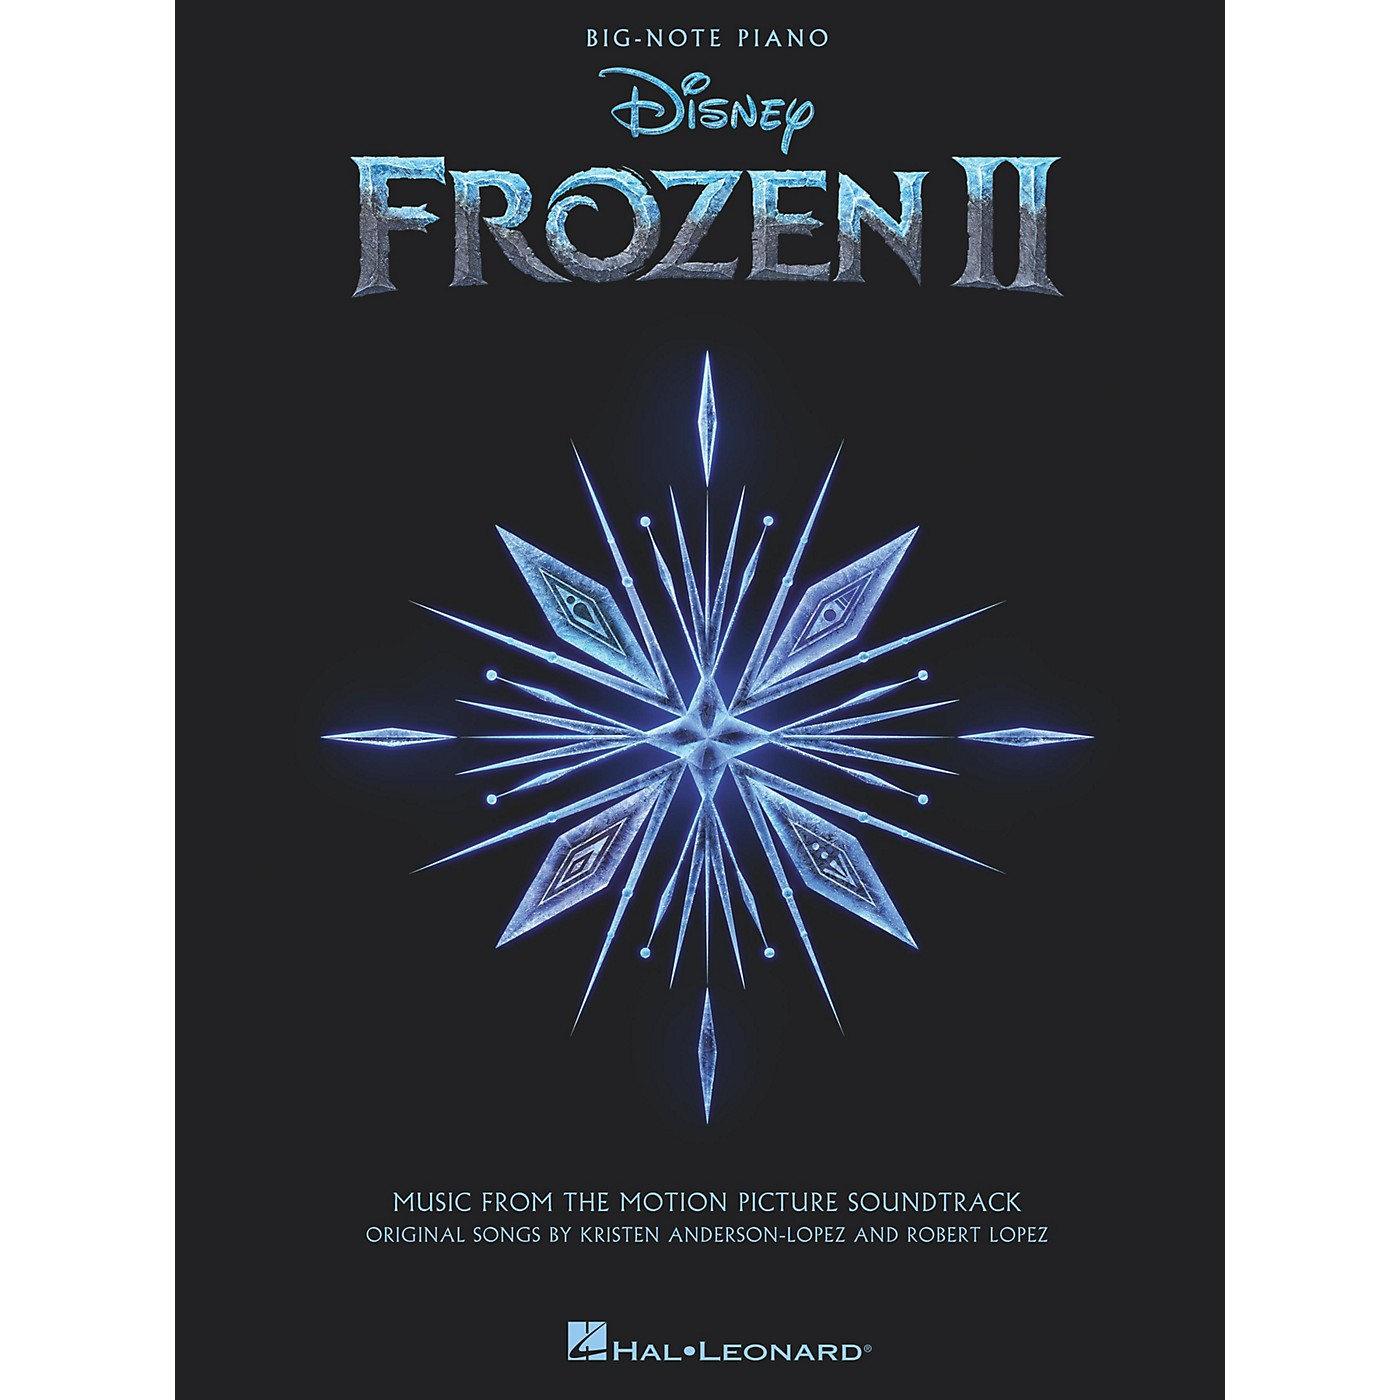 Hal Leonard Frozen II Big-Note Piano Songbook thumbnail